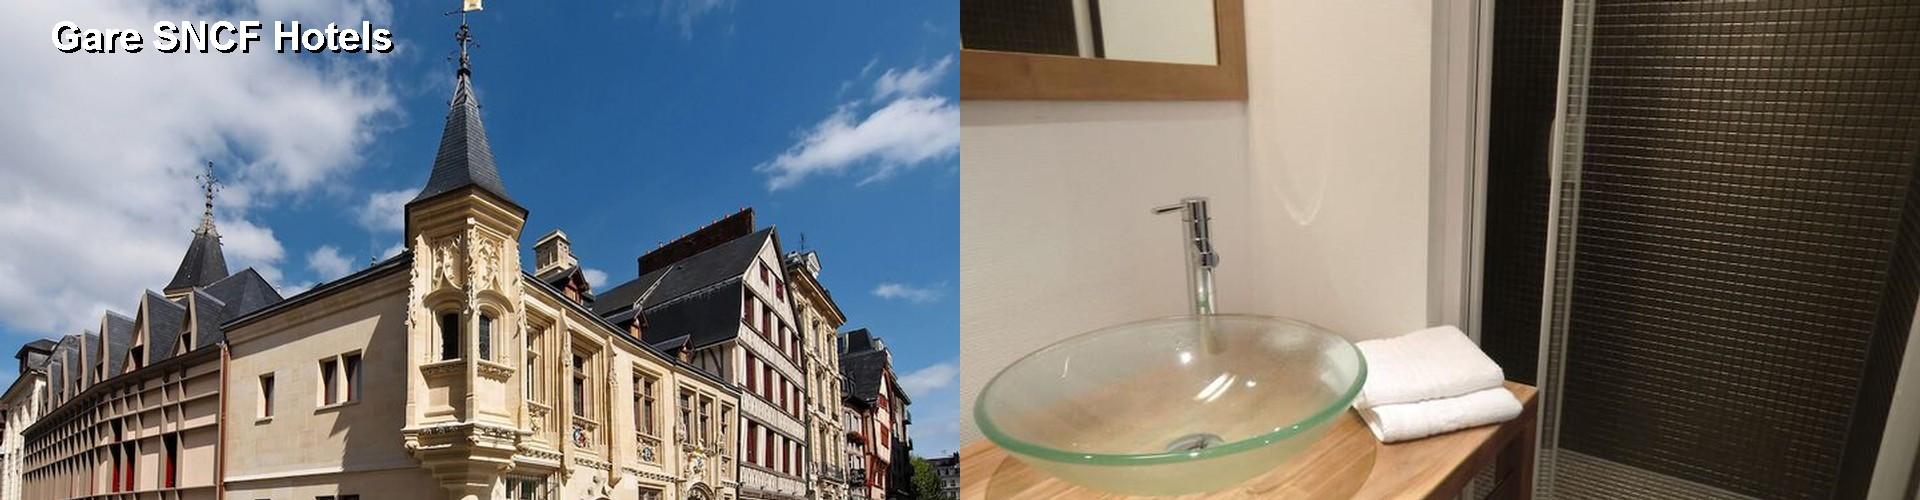 5 Best Hotels near Gare SNCF